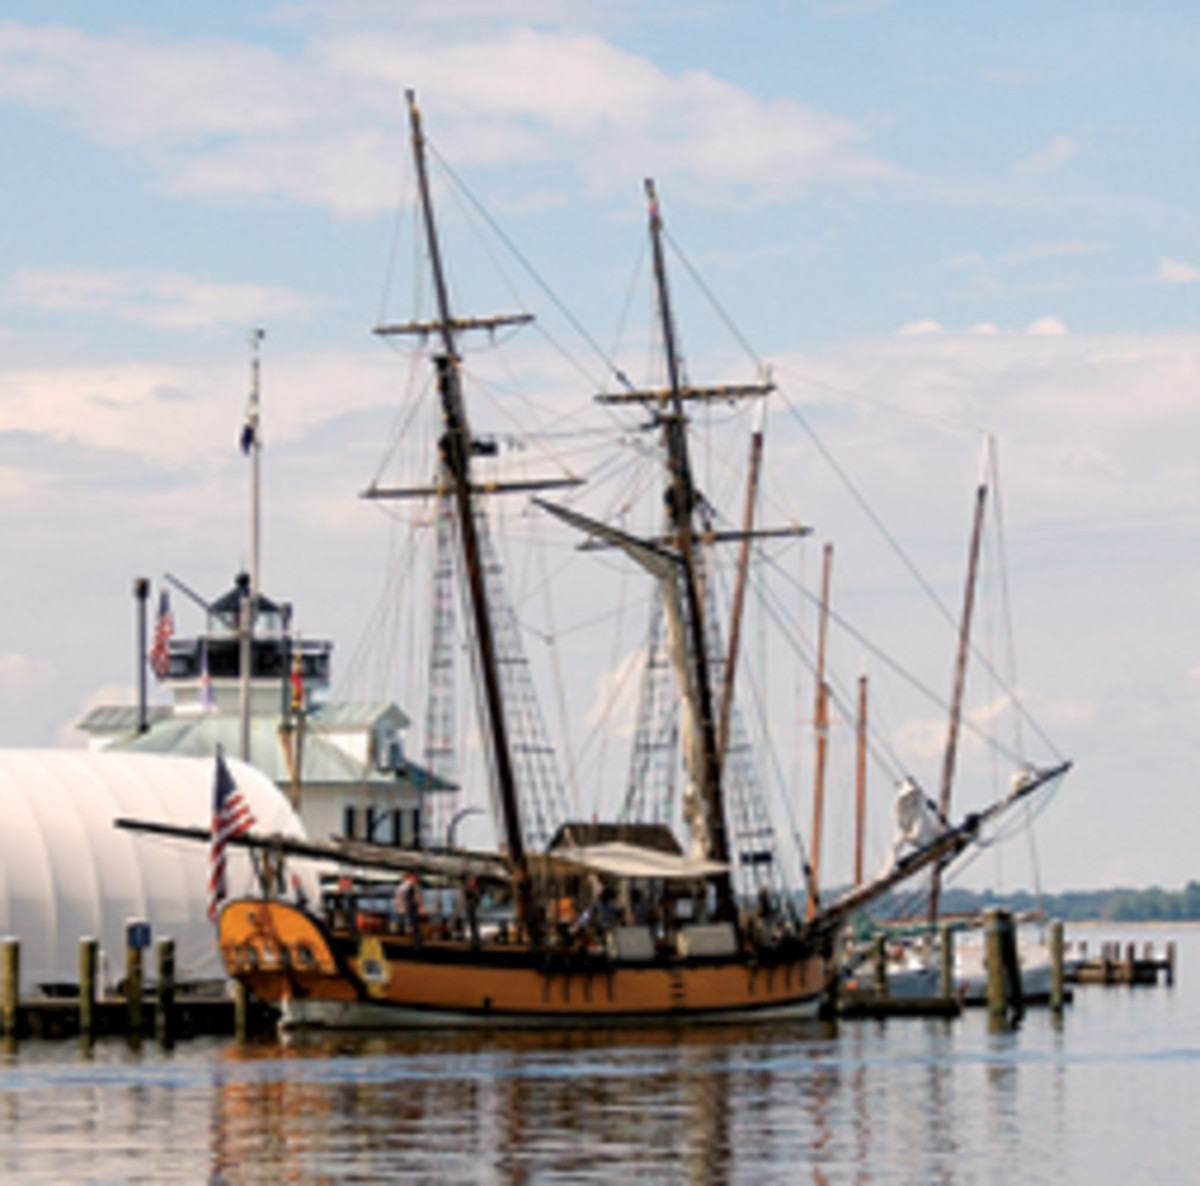 The schooner Sultana is scheduled to dock in May at the Chesapeake Bay Maritime Museum.